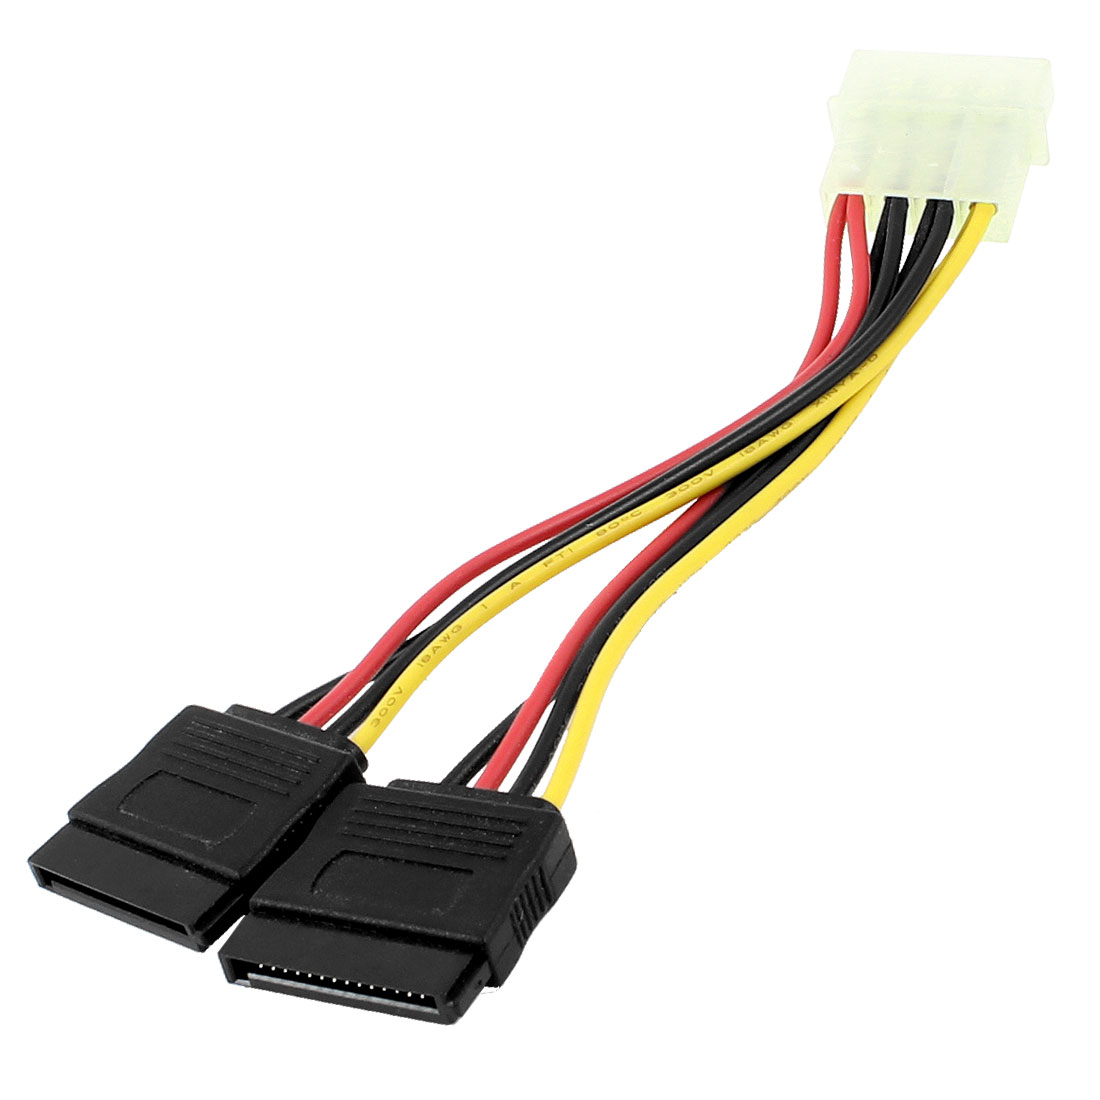 IDE 4 Pin Male to 2 x SATA 15 Pin Female Hard Drive HDD Power Cable Adapter